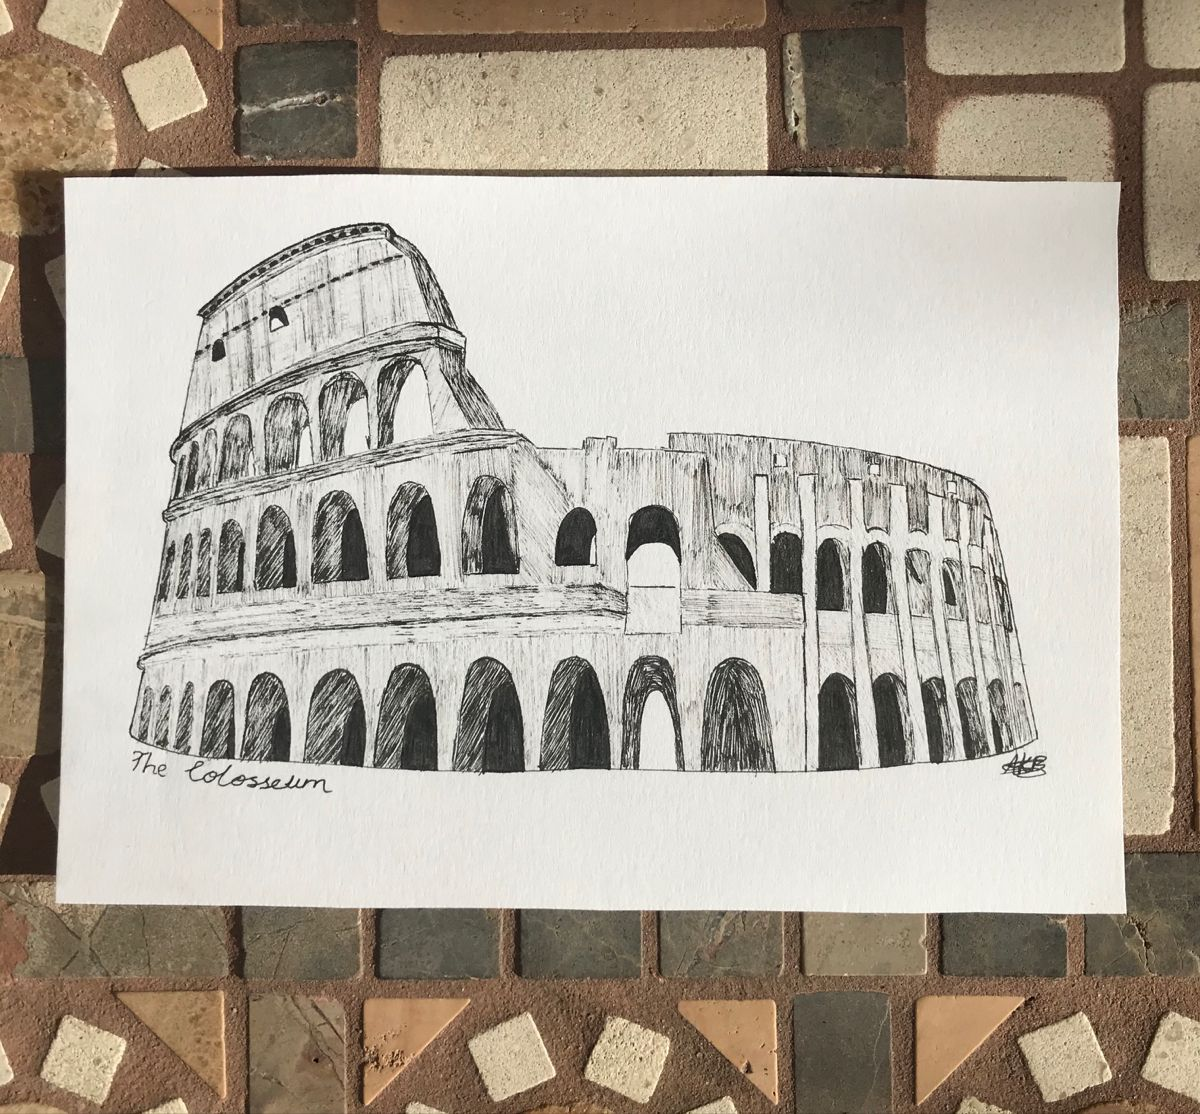 A pen drawing of the Colosseum, Rome. Available for physical and digital purchase through the link below. #pendrawing #archisketch #sketch #drawing #etsyshop #etsyseller #colosseum #colosseumdrawing